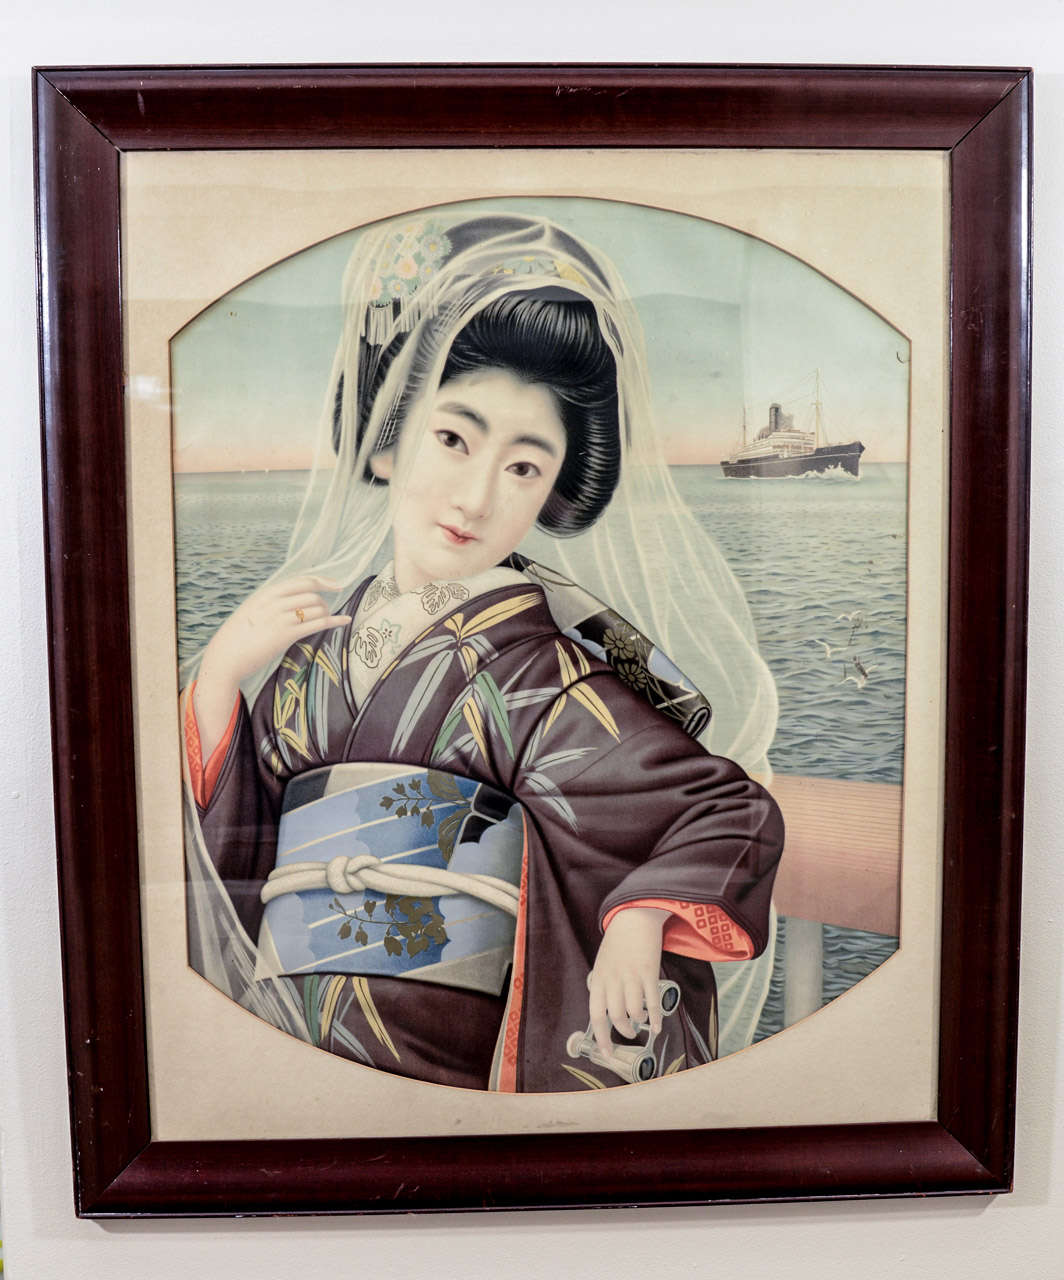 A Japanese late Meiji period portrait of a young lady standing near the ocean.